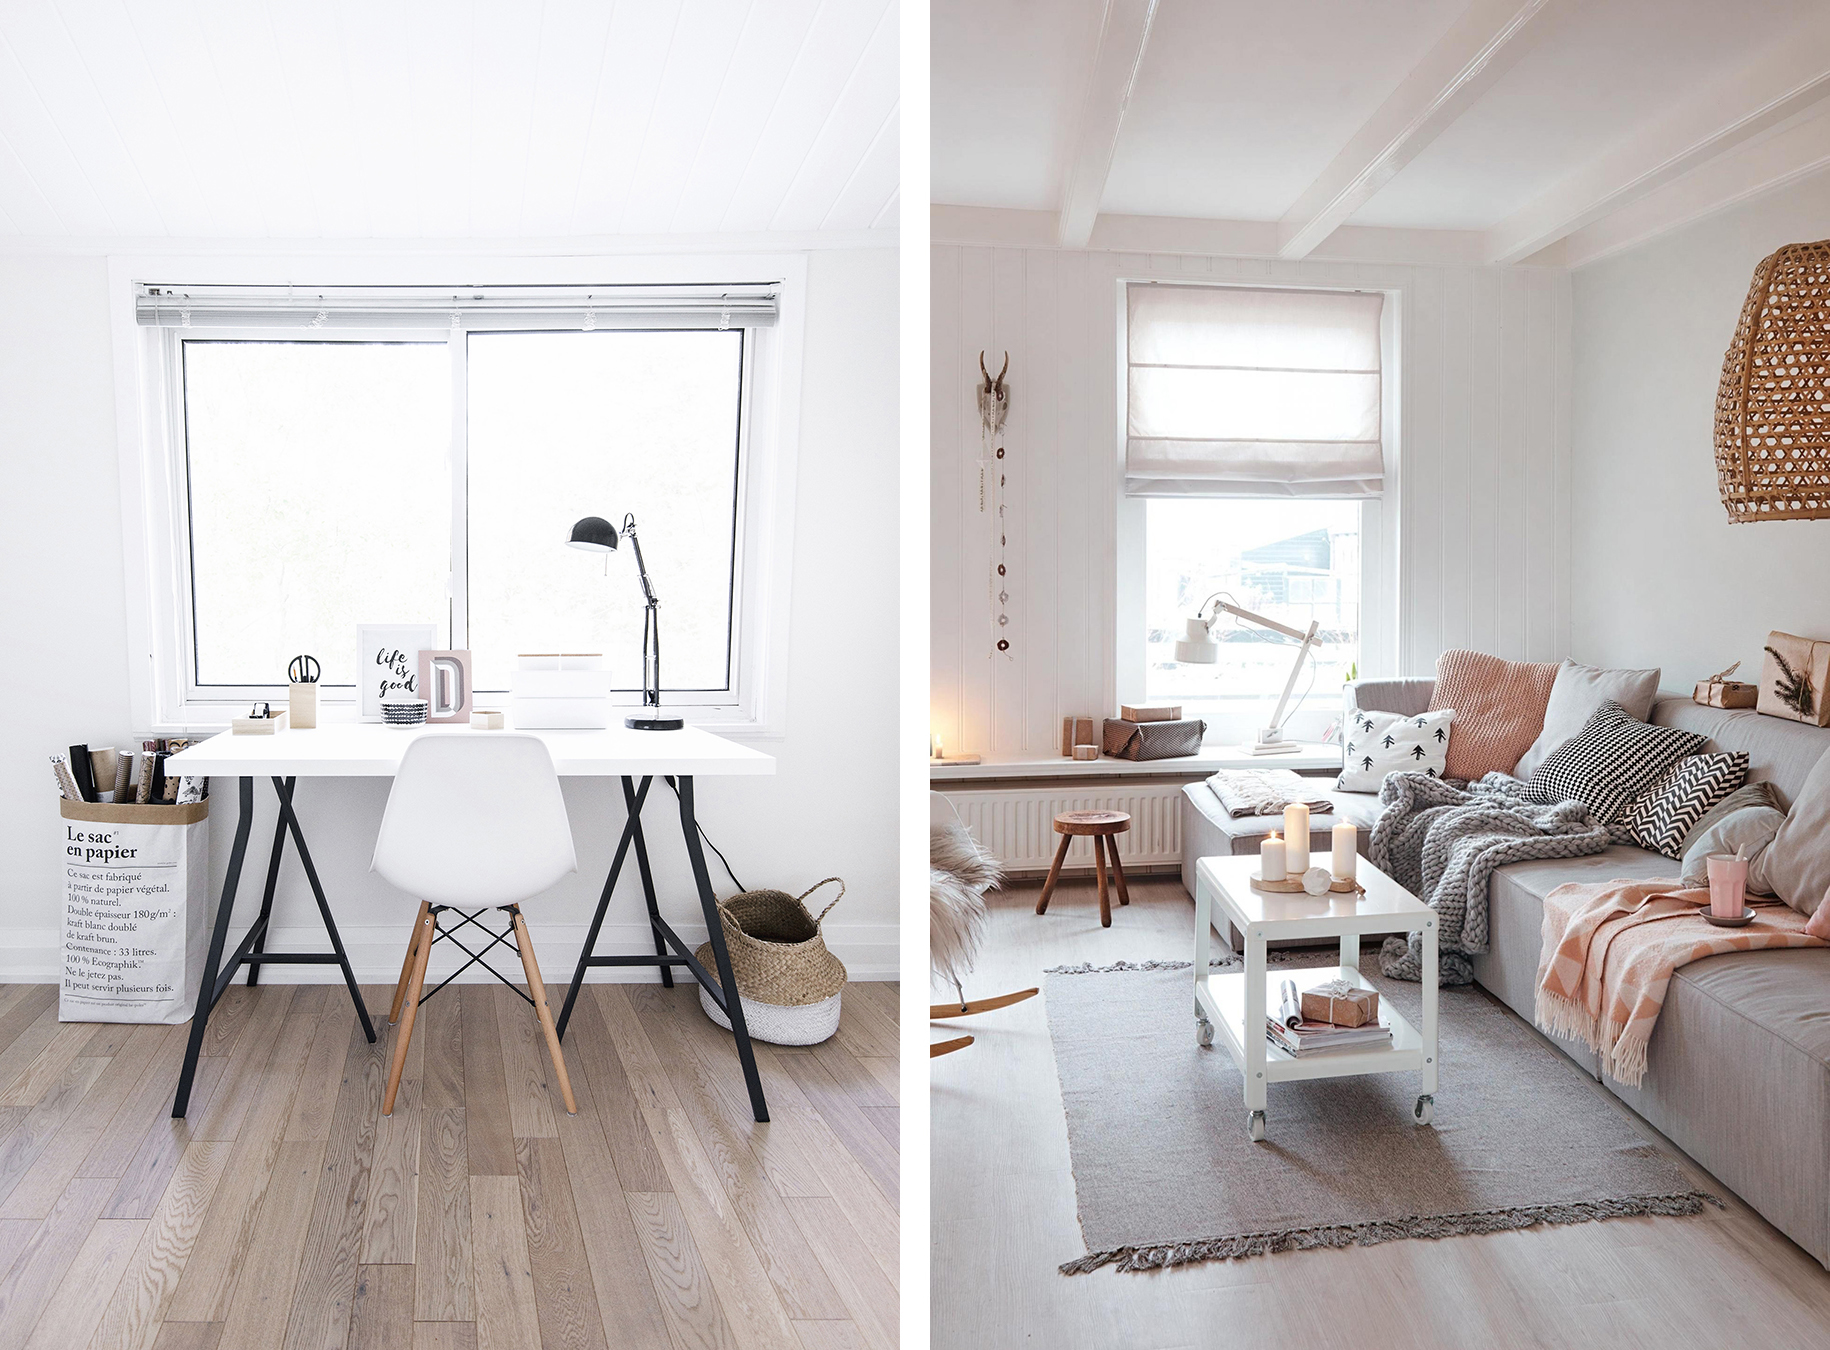 Scandinavian interior with neutral and pastel colors - Top 10 tips for adding Scandinavian style to your home | Happy Grey Lucky